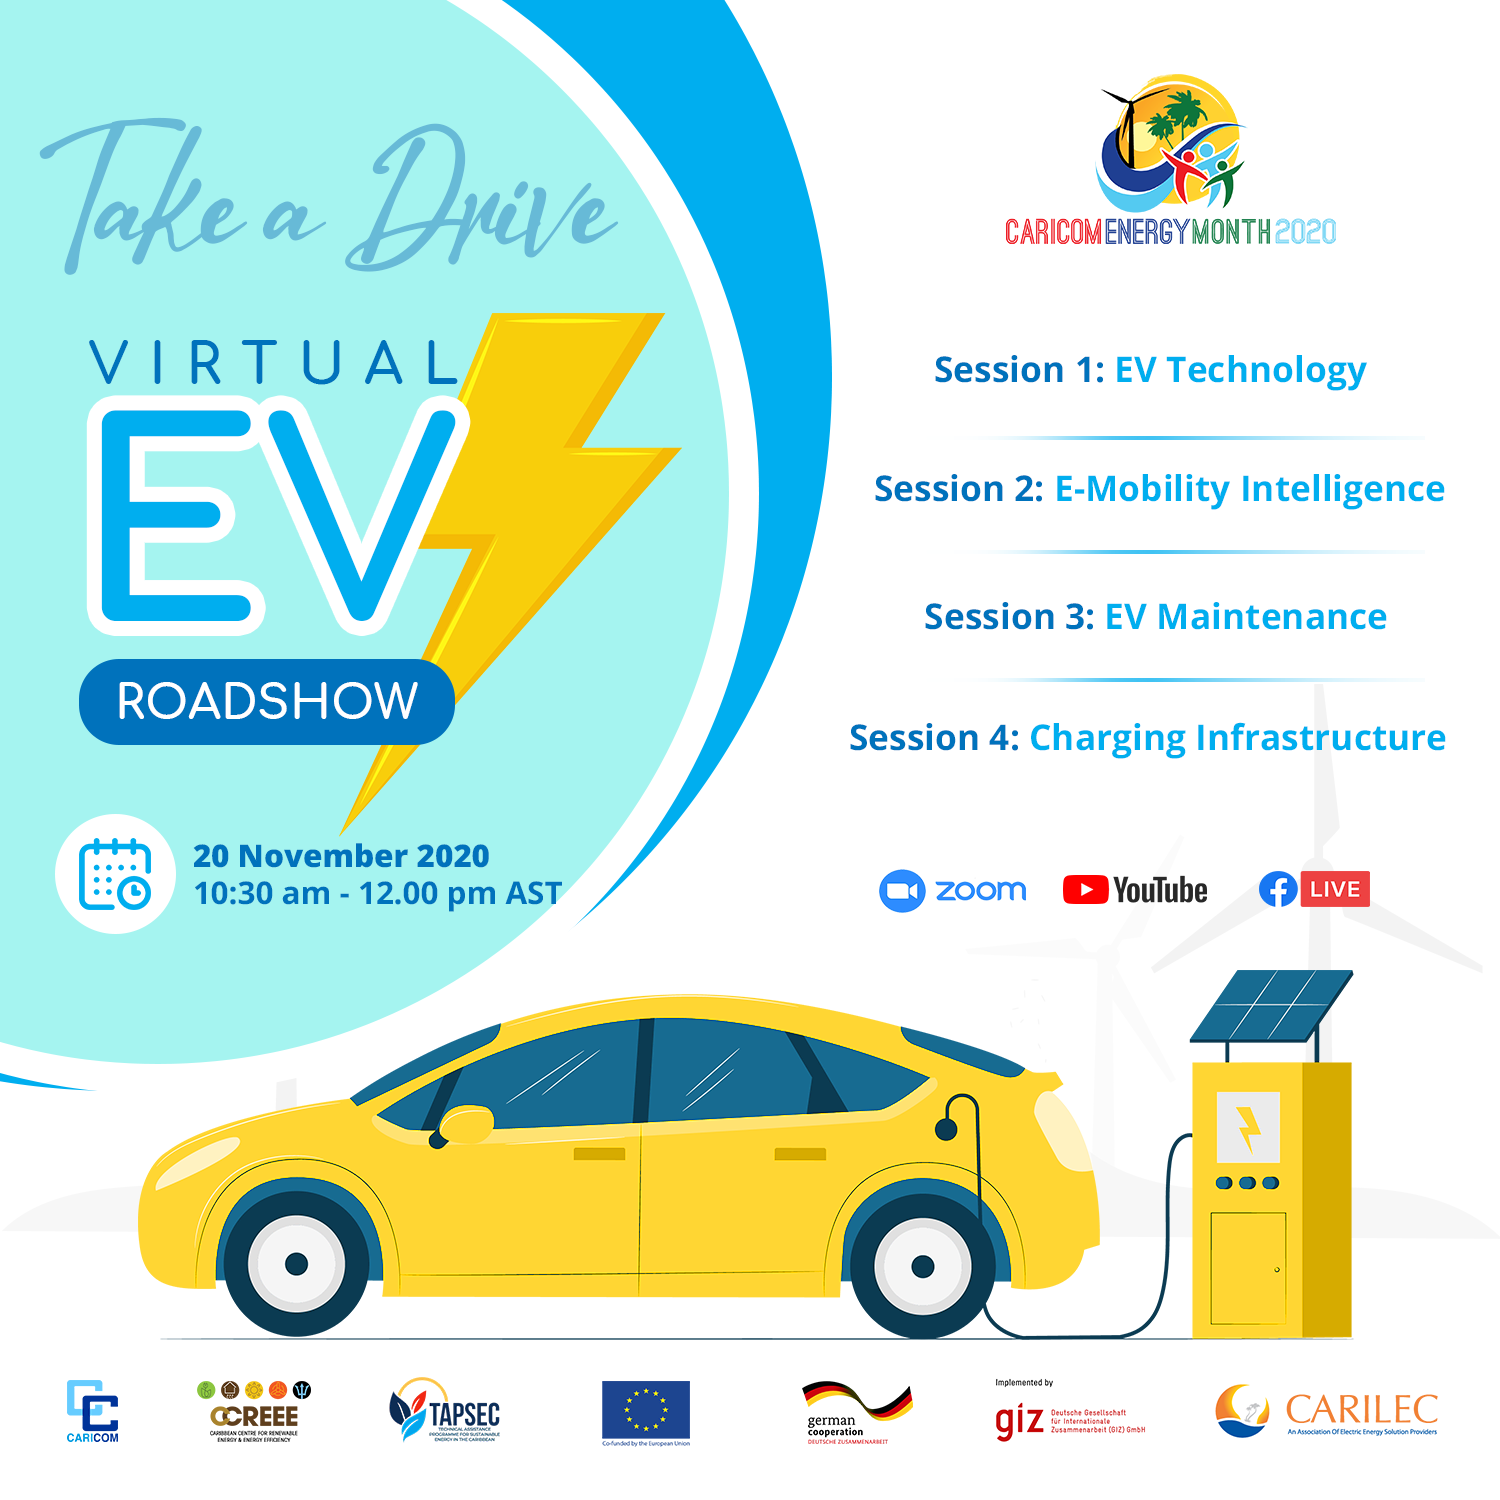 'Take a Drive' Virtual Electric Vehicle Roadshow